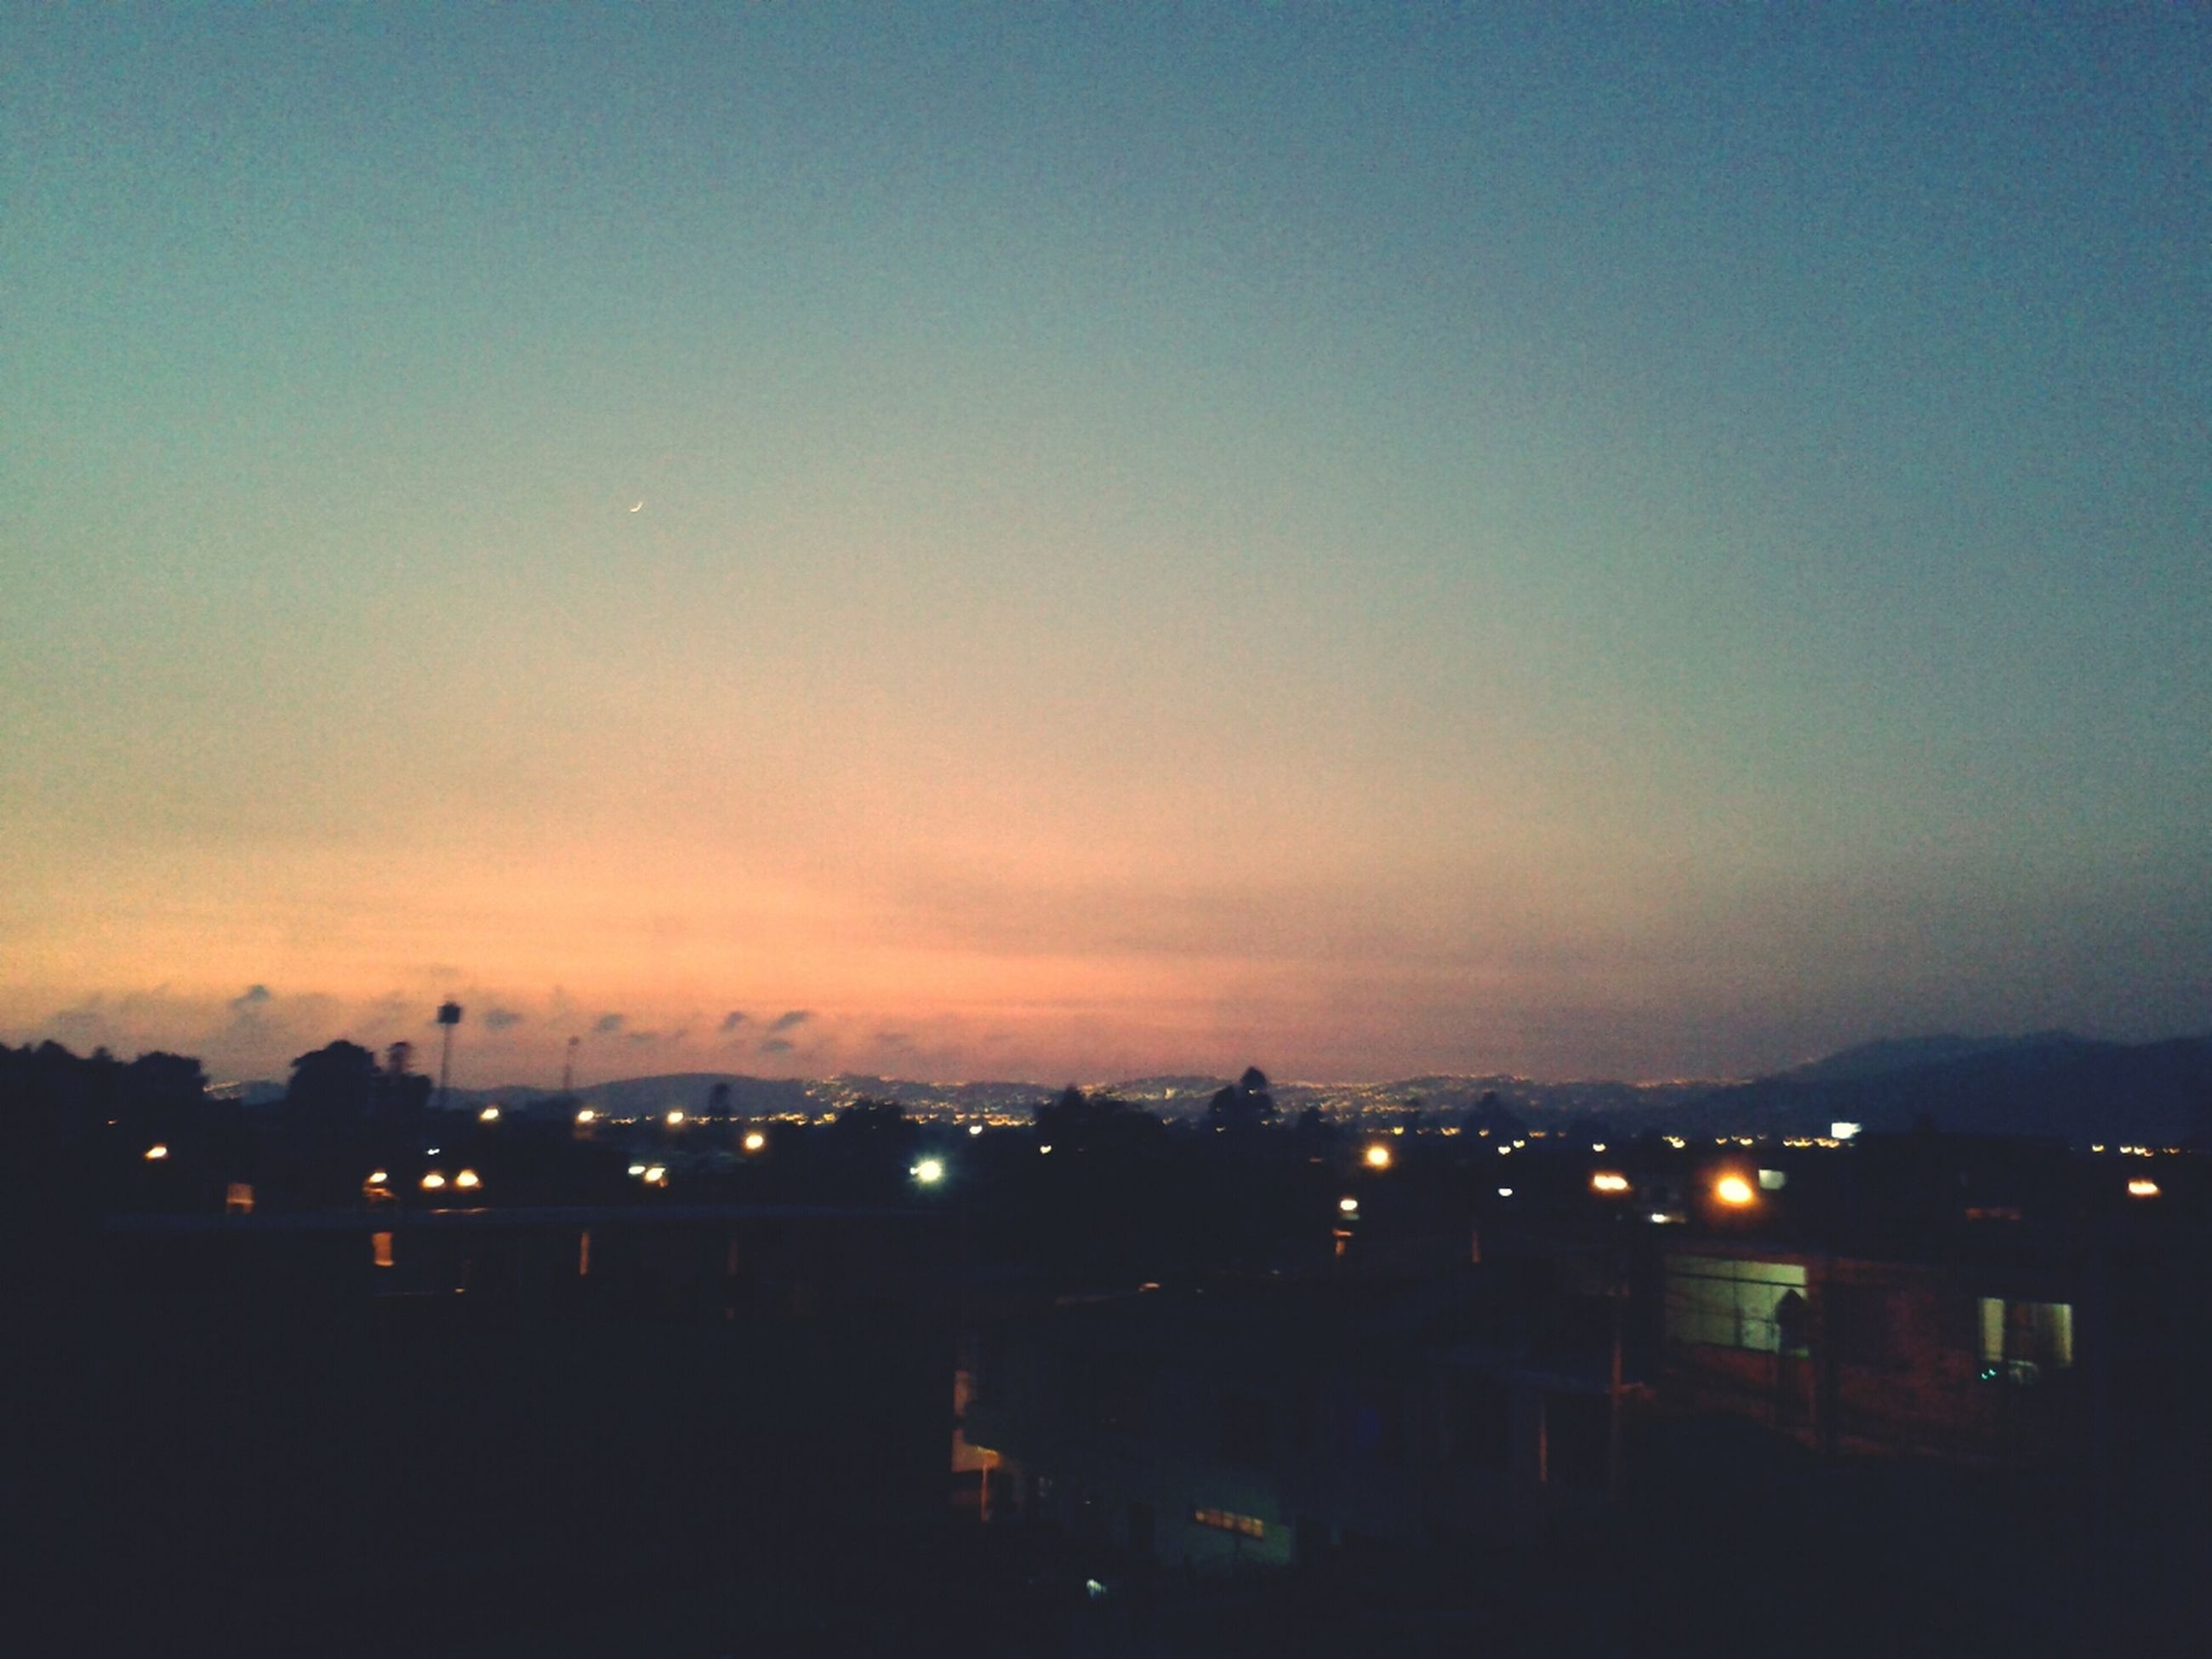 illuminated, building exterior, night, architecture, built structure, silhouette, sky, city, copy space, dusk, sunset, cityscape, residential structure, dark, house, residential building, outdoors, scenics, residential district, moon